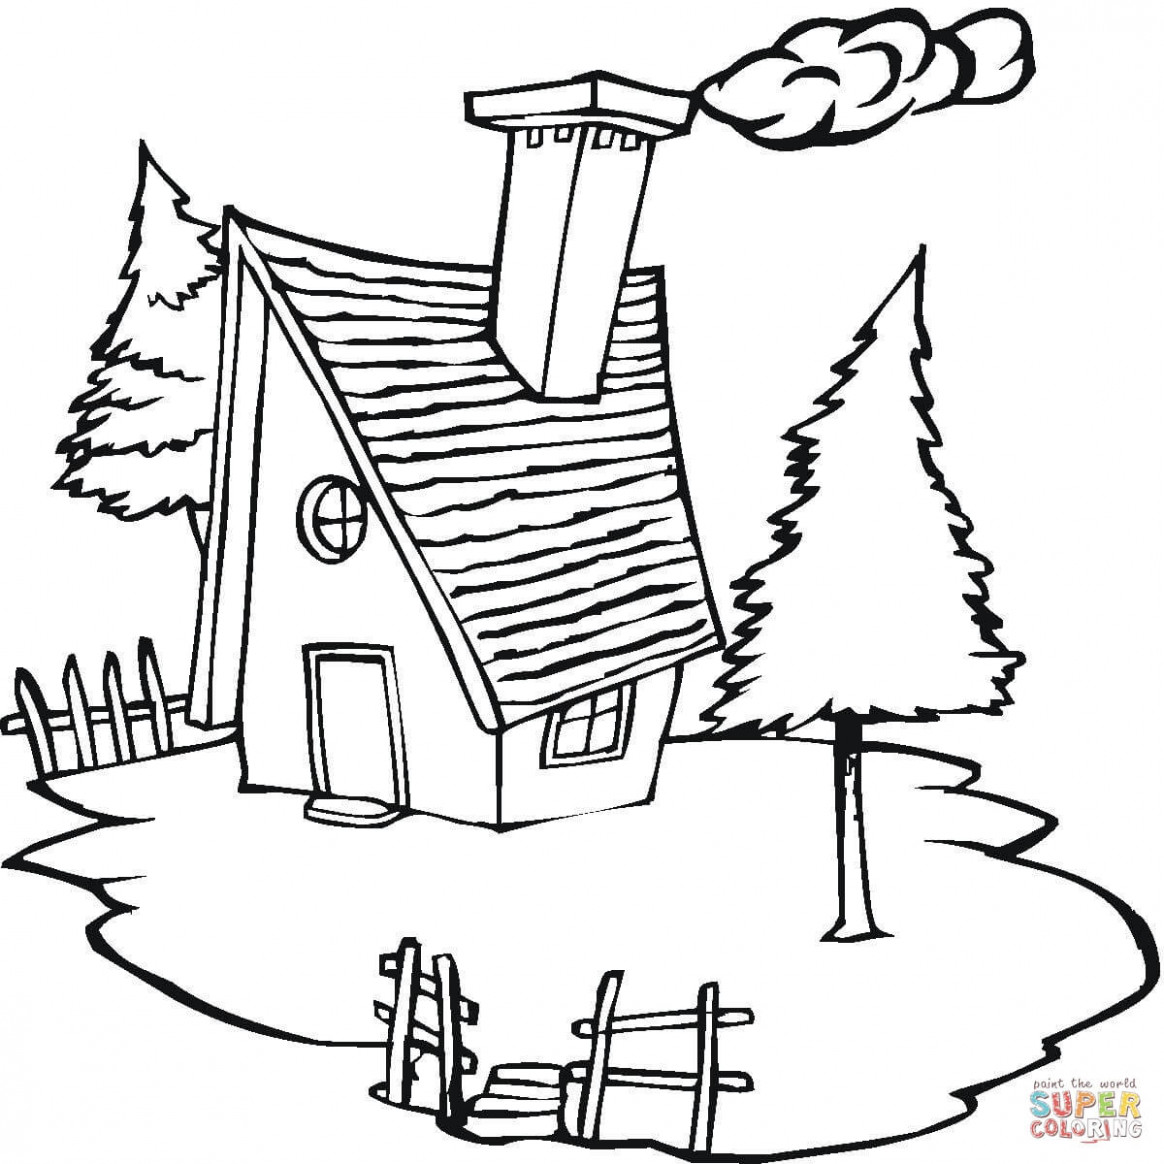 Cottage In The Village coloring page | Free Printable Coloring Pages